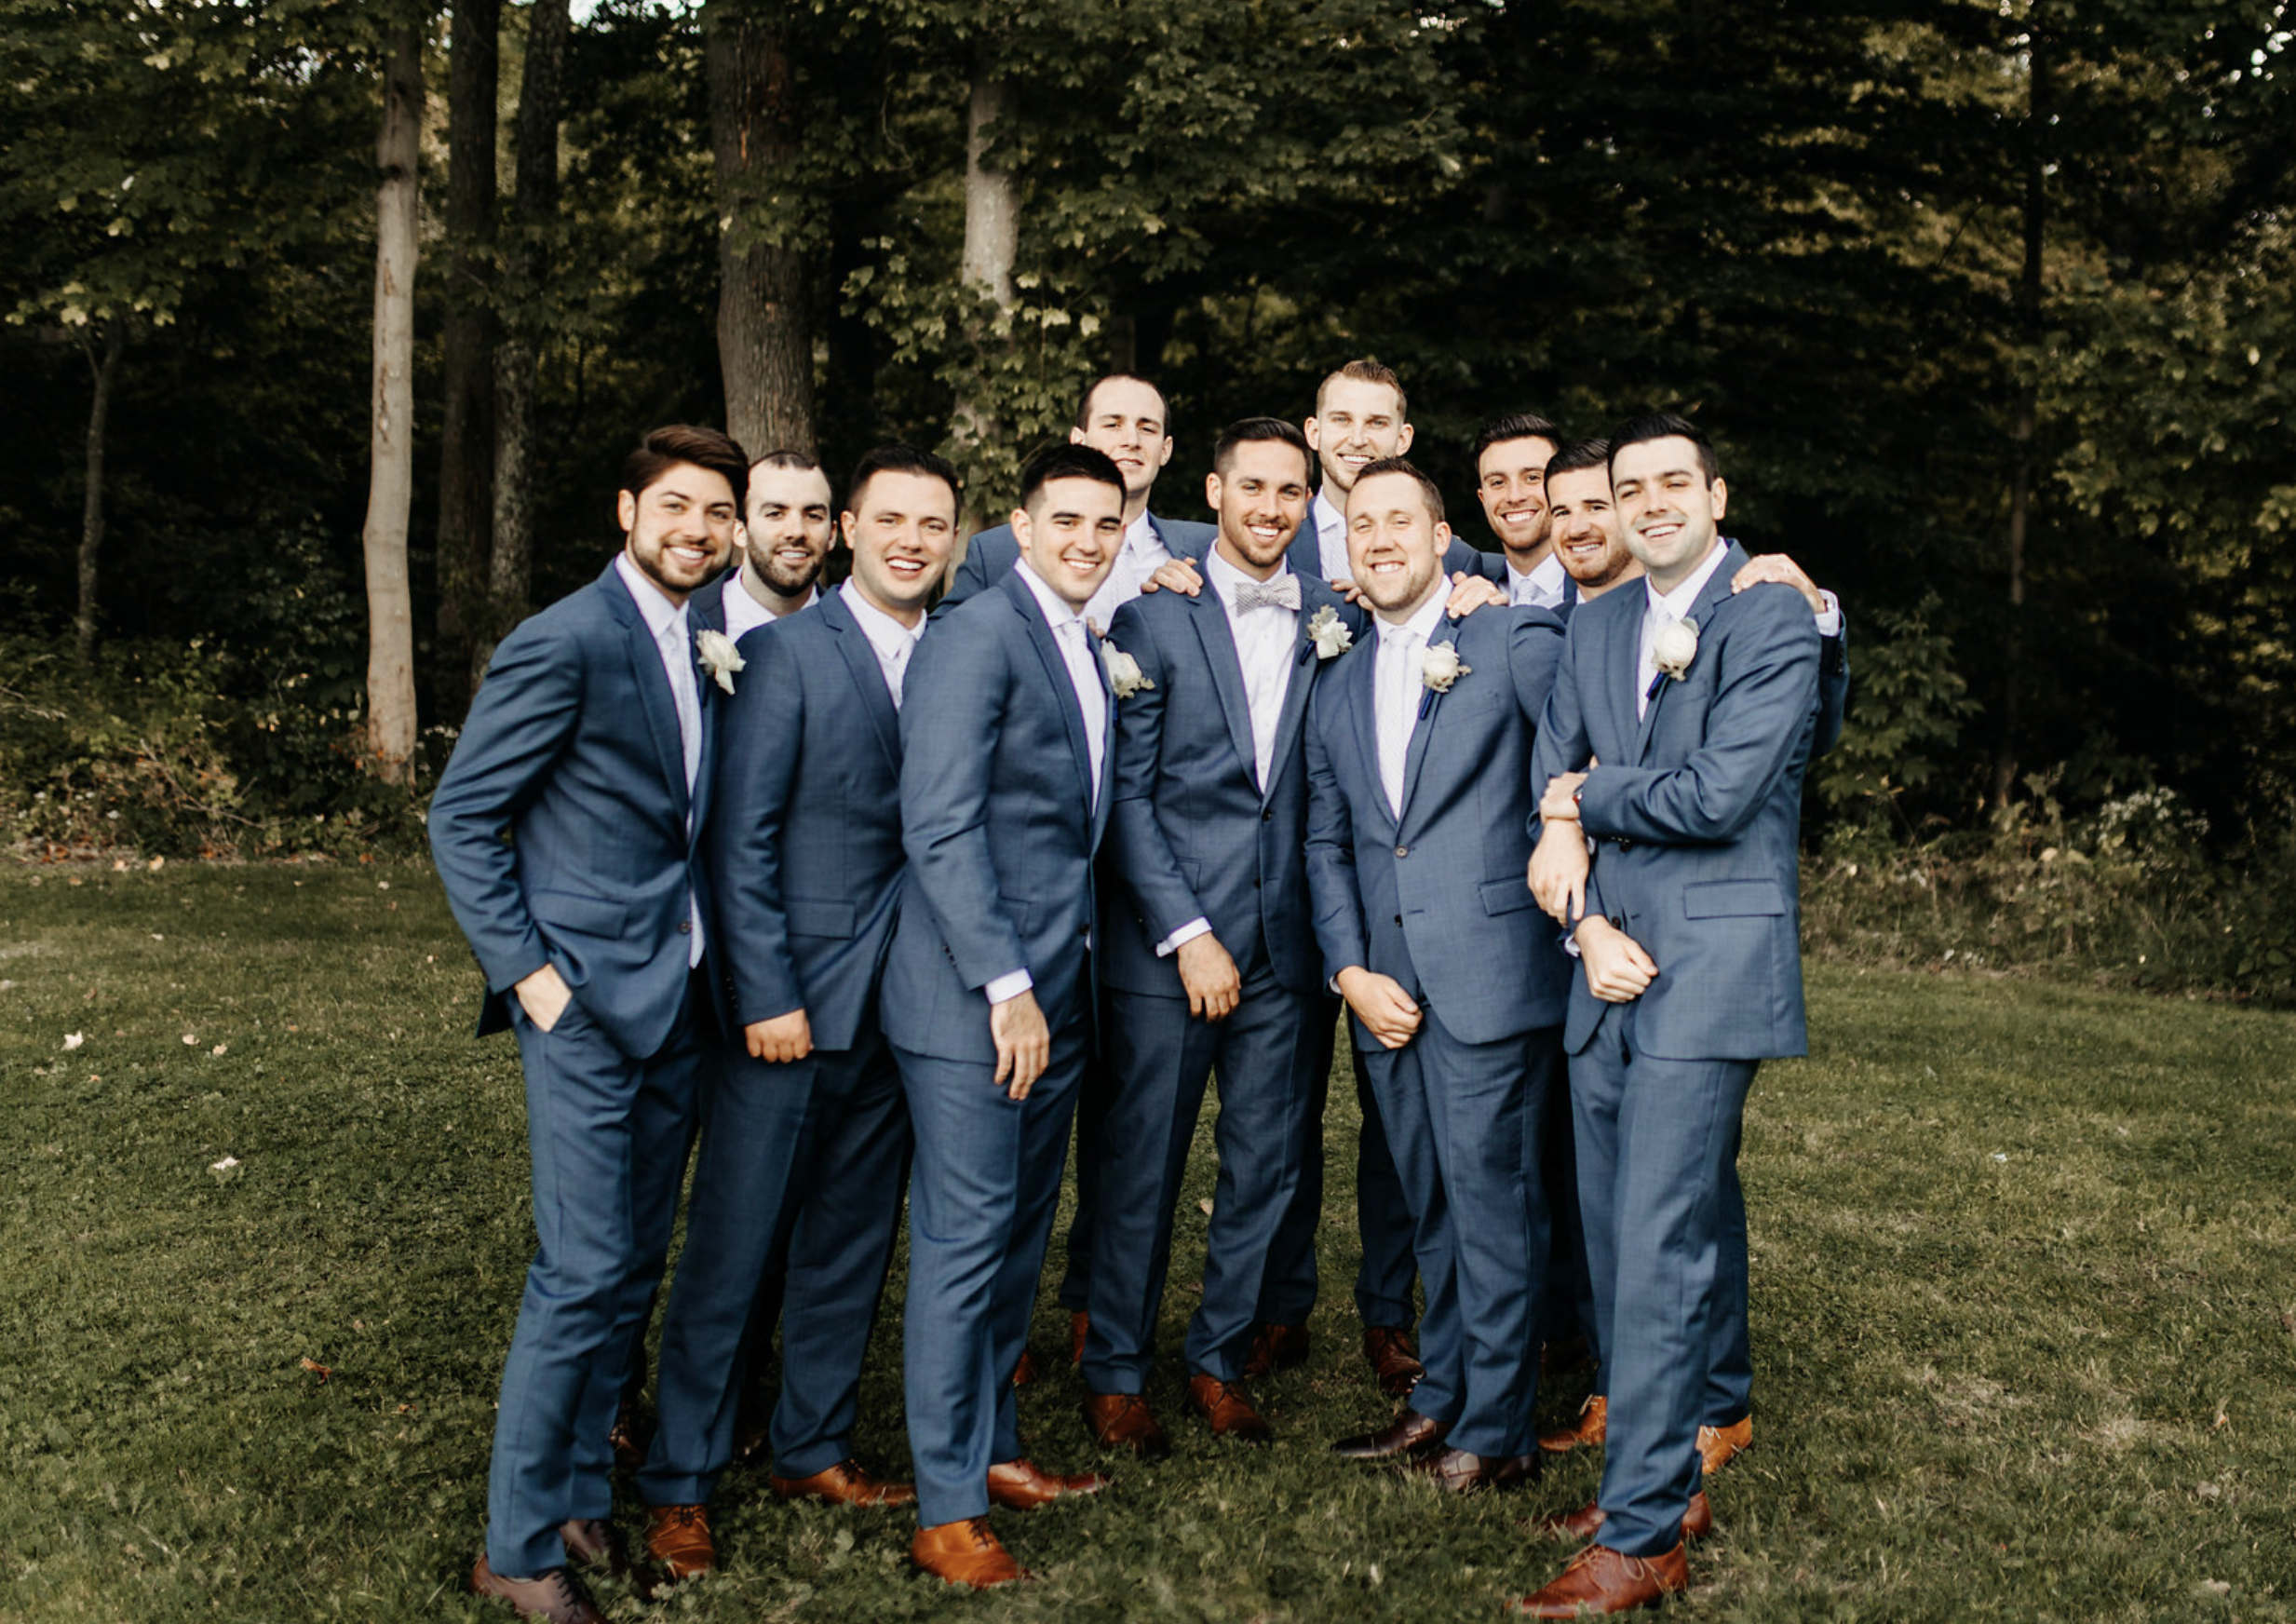 Valerie-and-TJ-McConnell-Wedding-Coordination-by-Cassandra-Clair-Event-Prep-Pittsburgh-Wedding-40.png